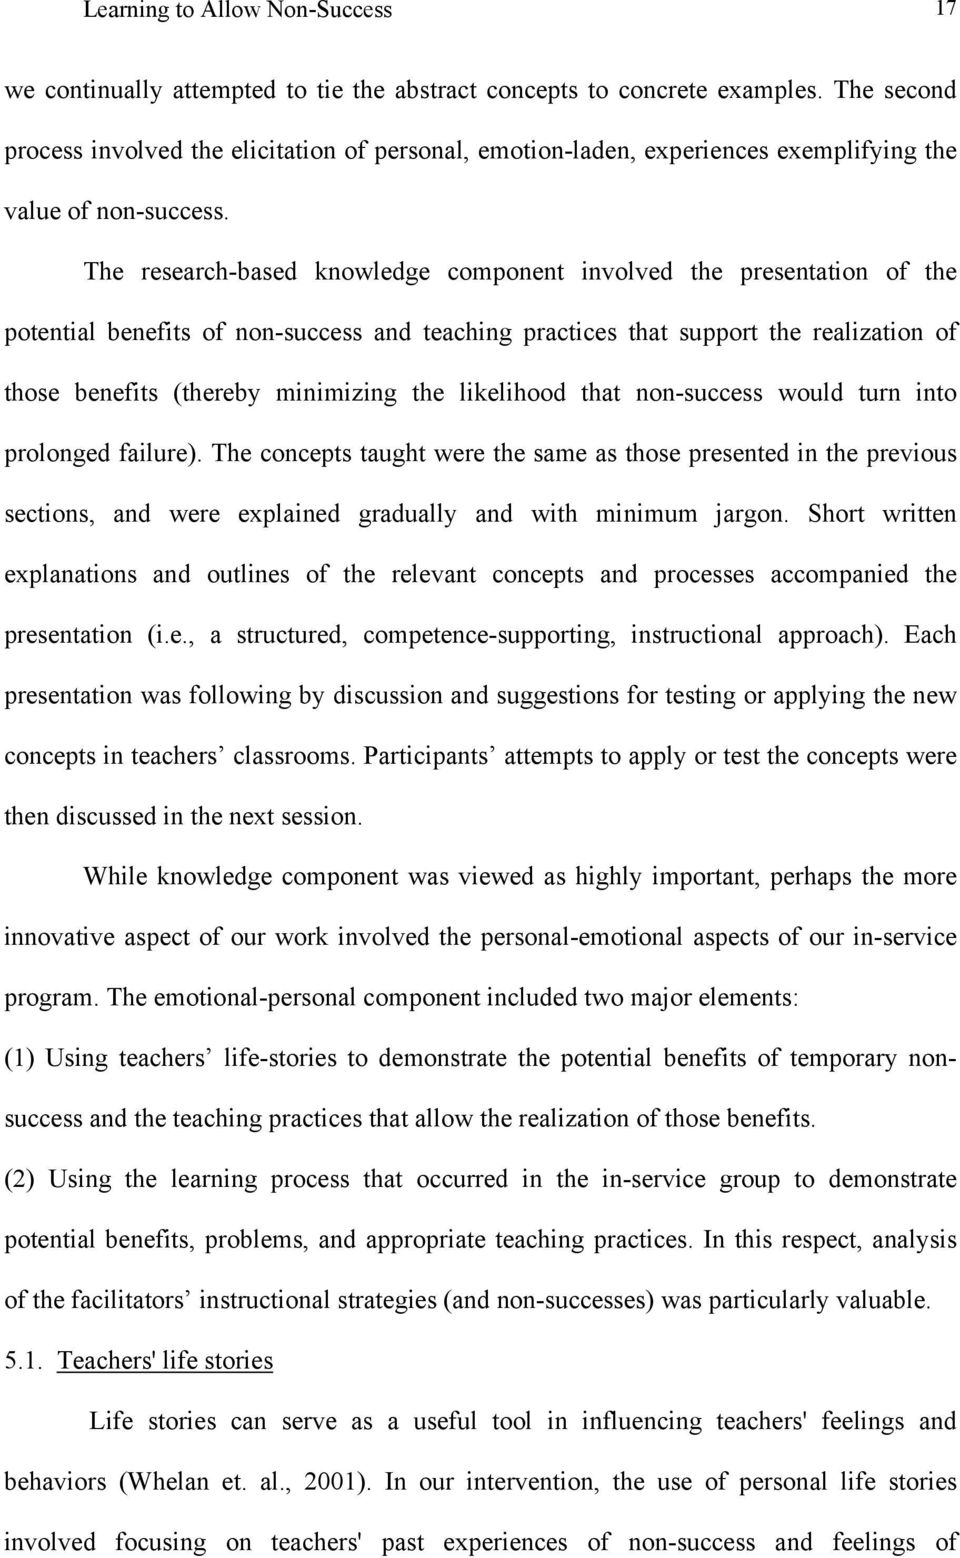 The research-based knowledge component involved the presentation of the potential benefits of non-success and teaching practices that support the realization of those benefits (thereby minimizing the